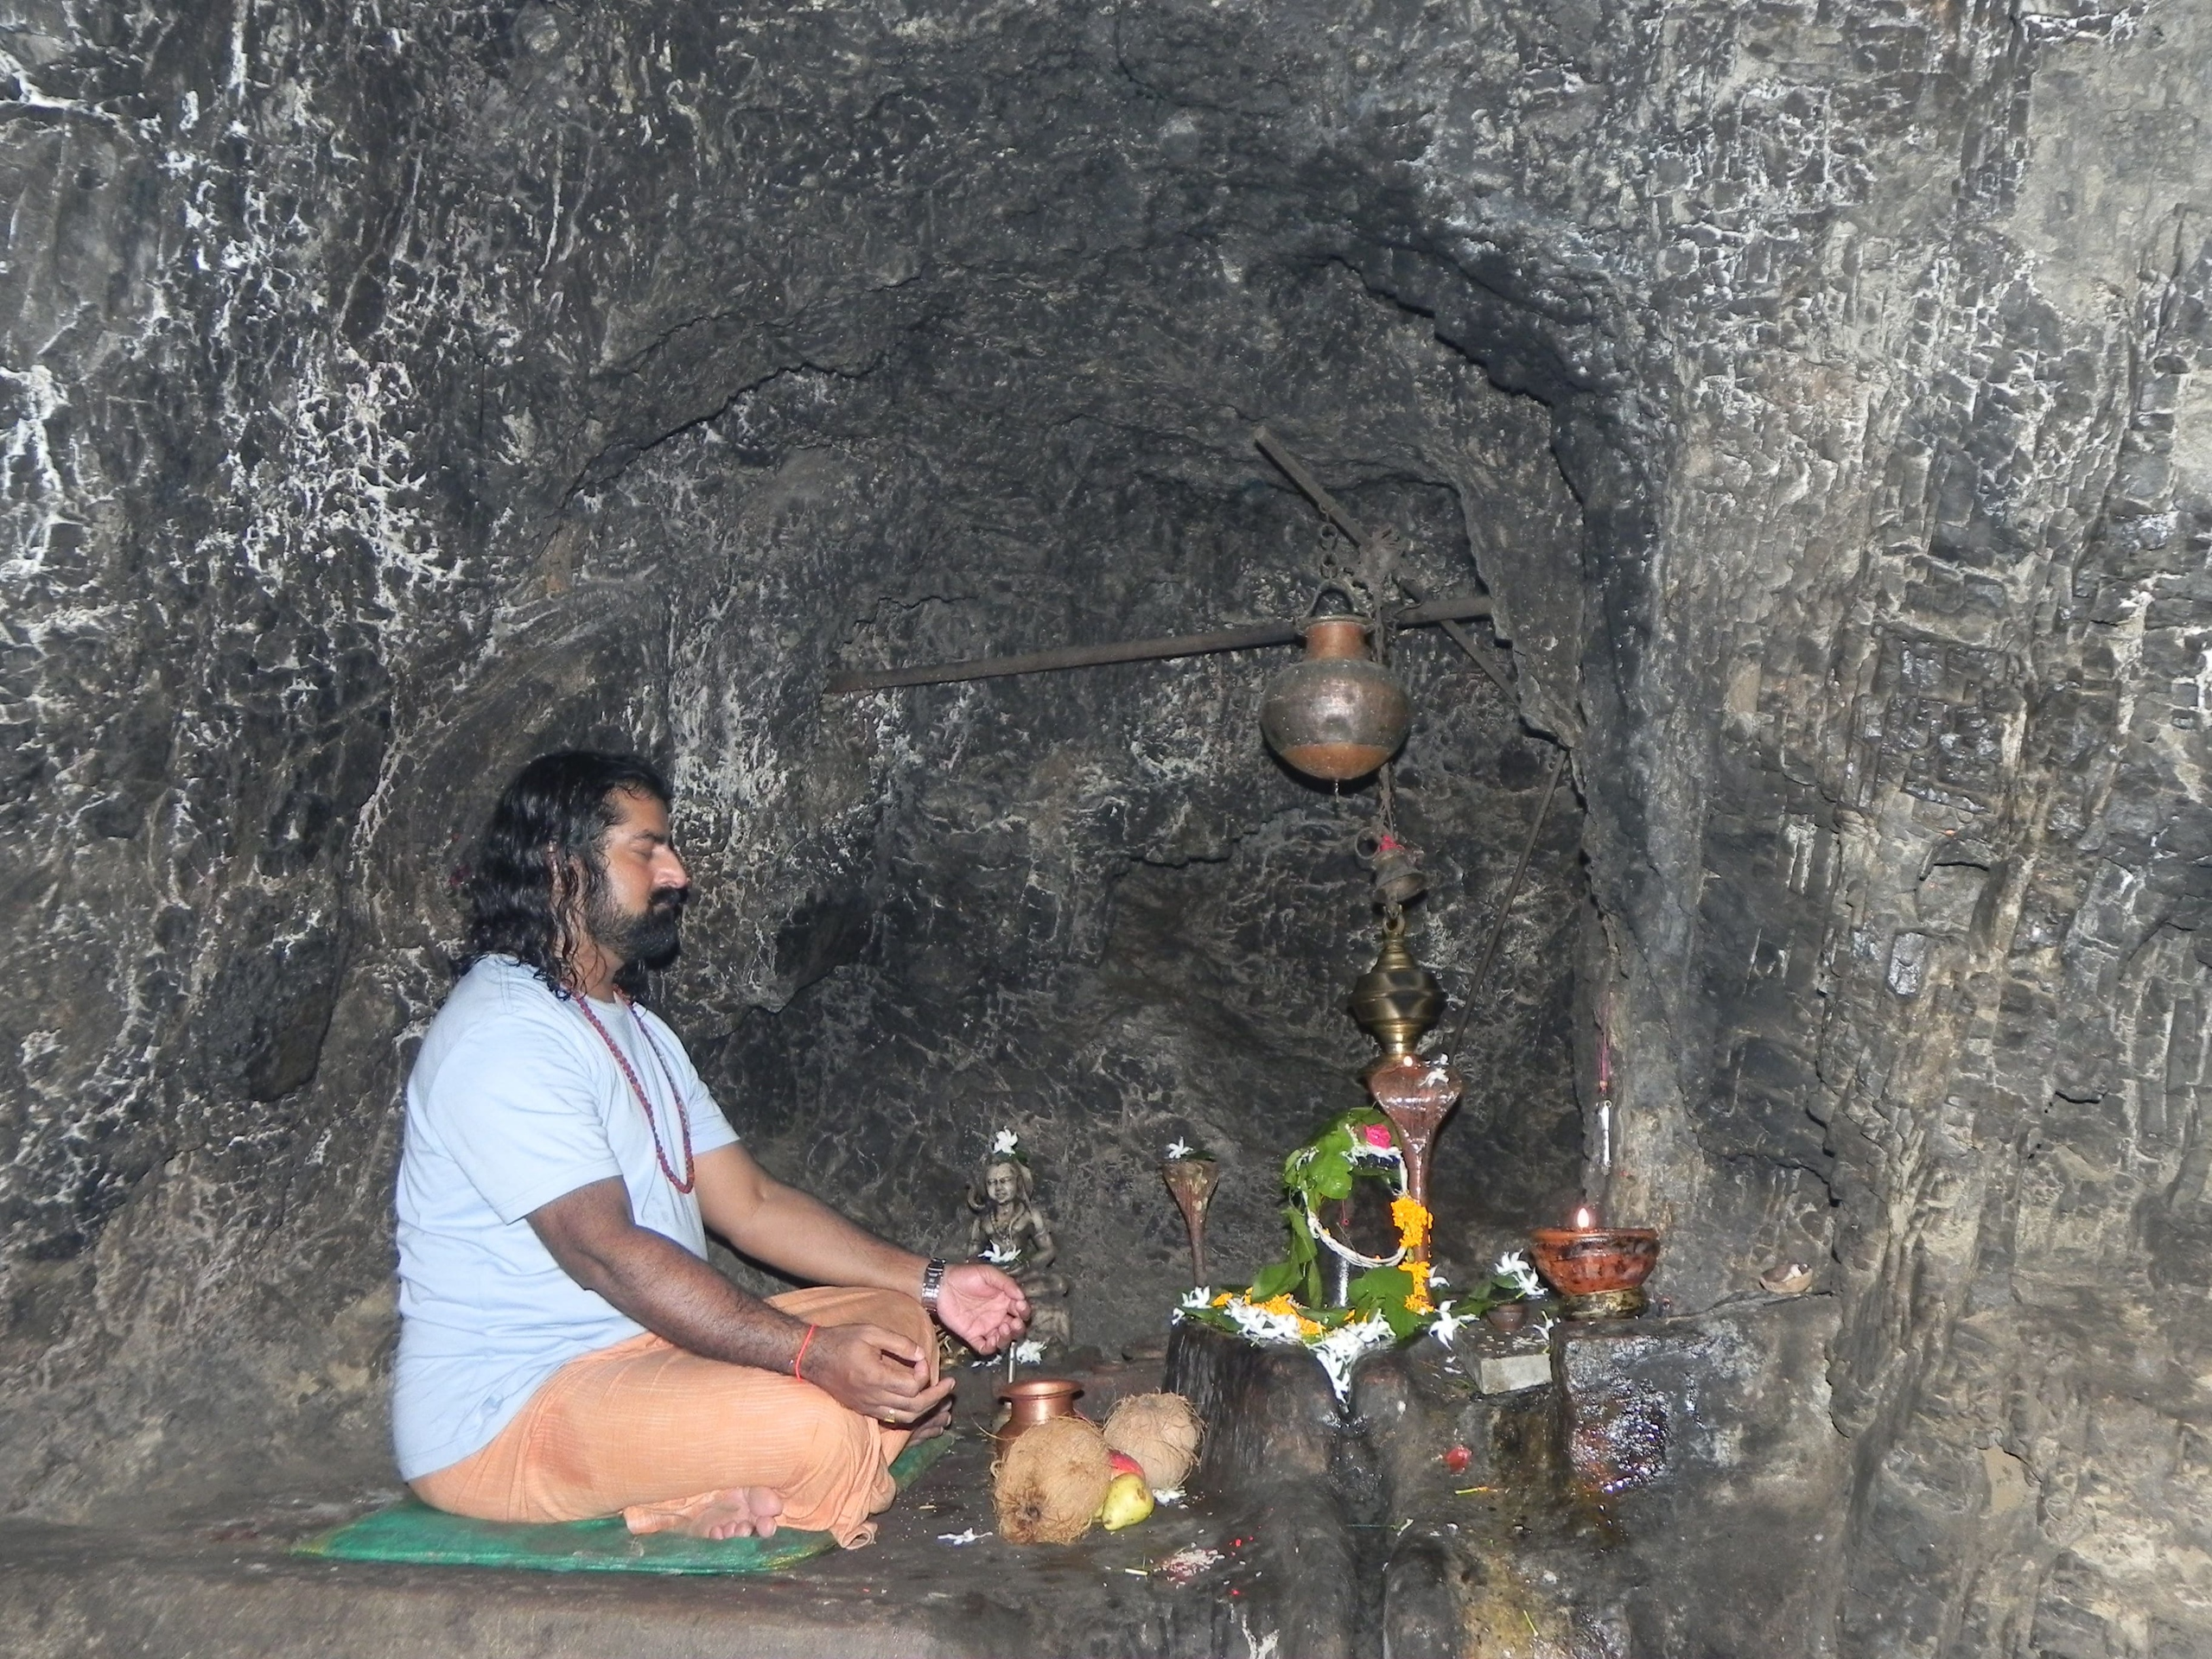 Mohanji doing intense sadhana at Vasishta Gufa